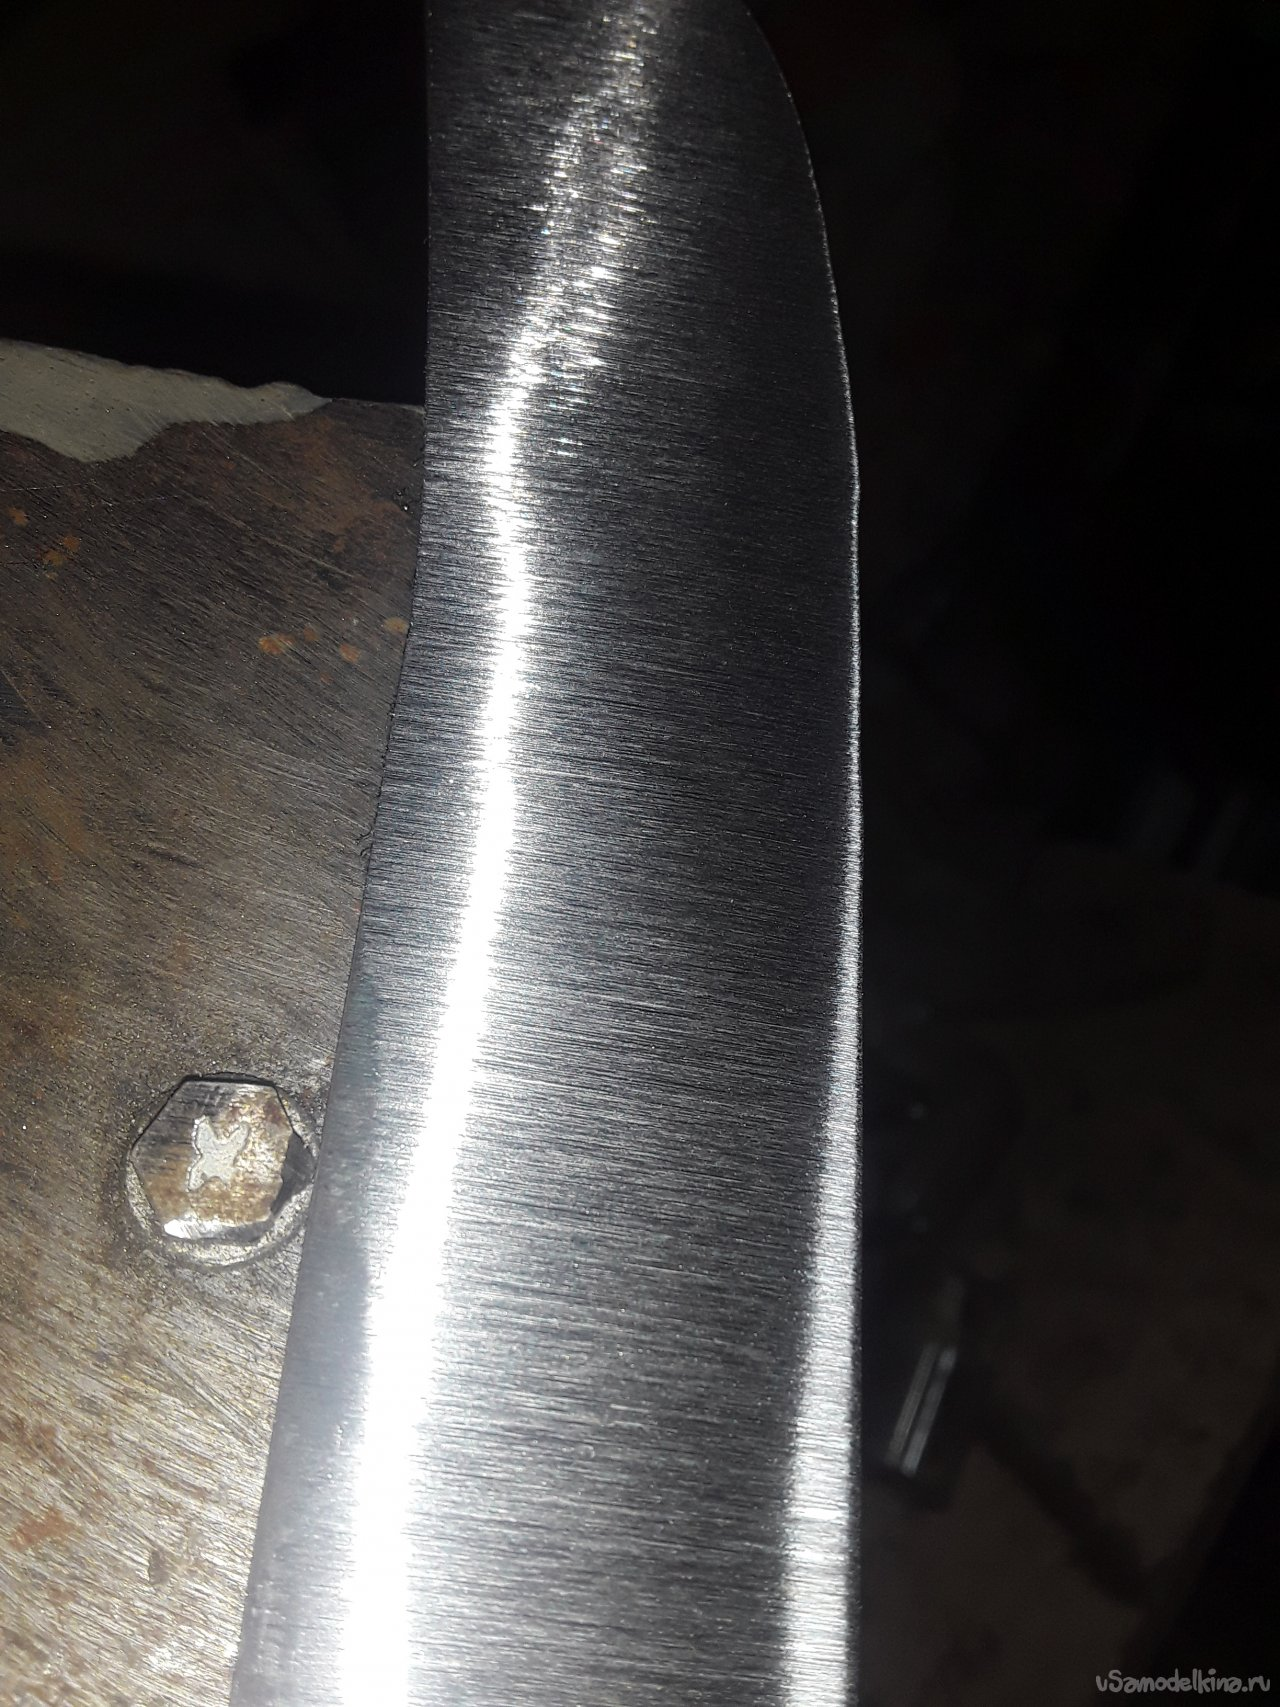 Forged knife made of spring